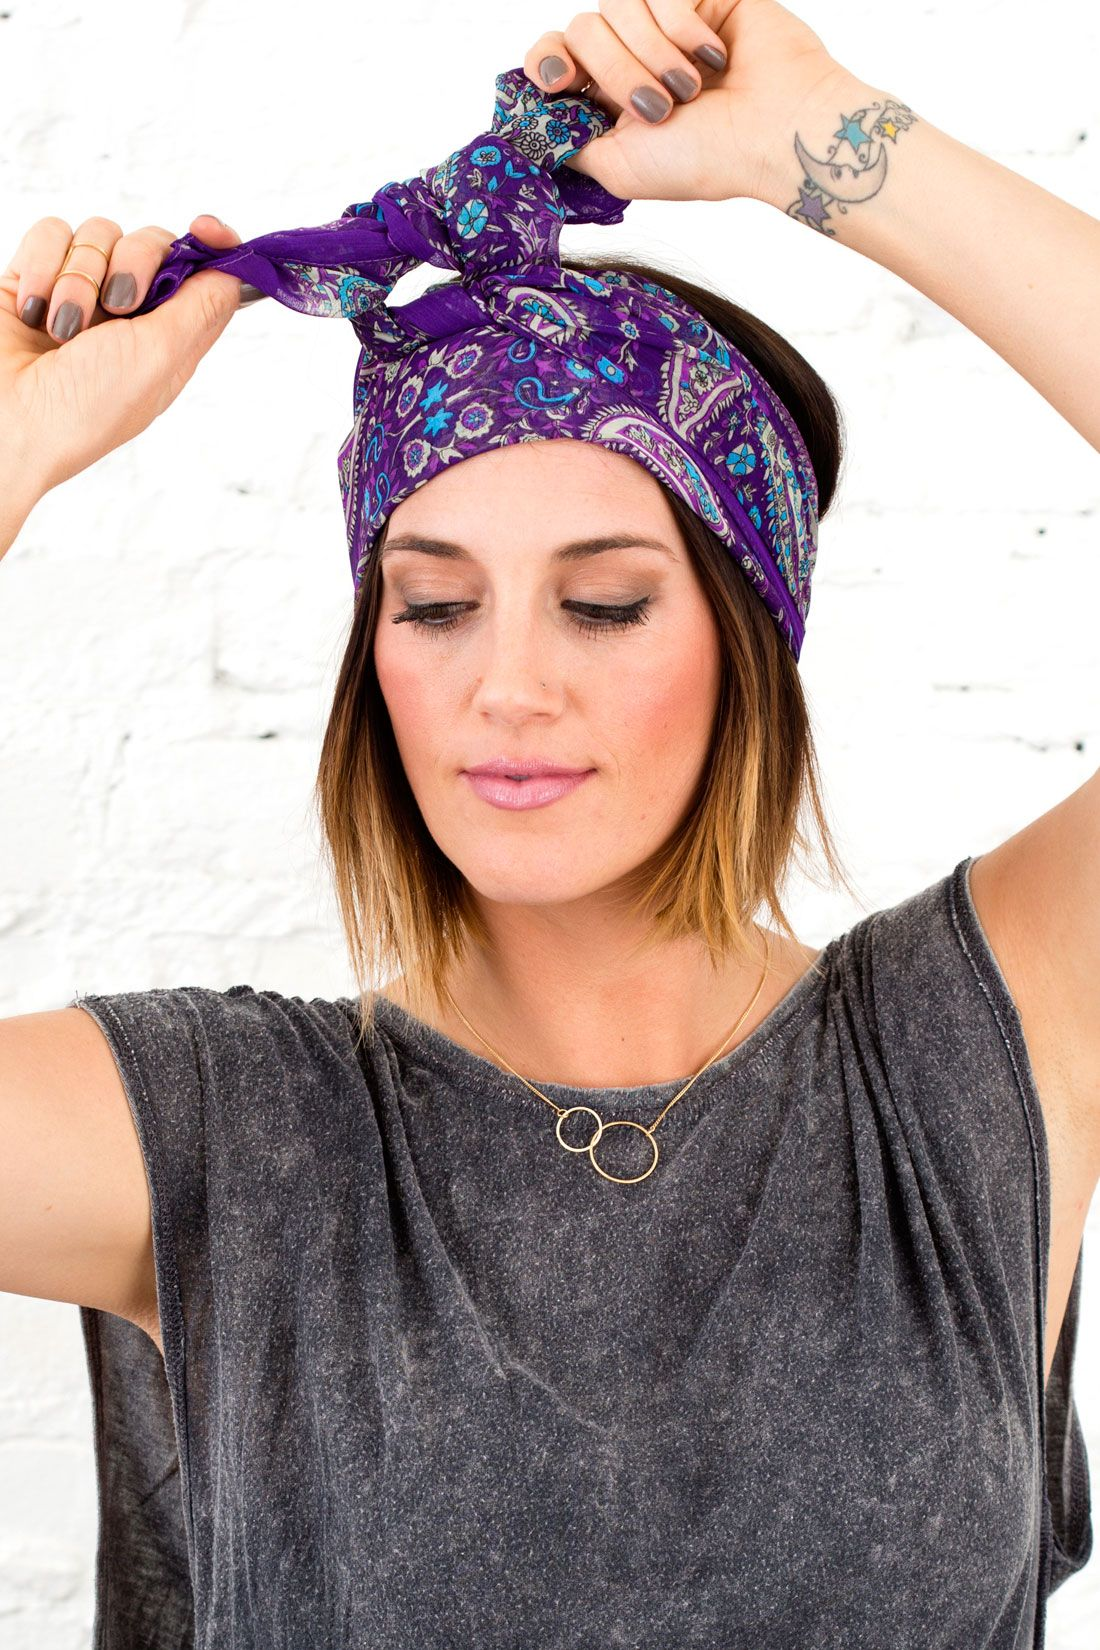 4 Ways To Wear A Scarf On Your Head This Spring Headbands For Short Hair Scarf Hairstyles Ways To Wear A Scarf